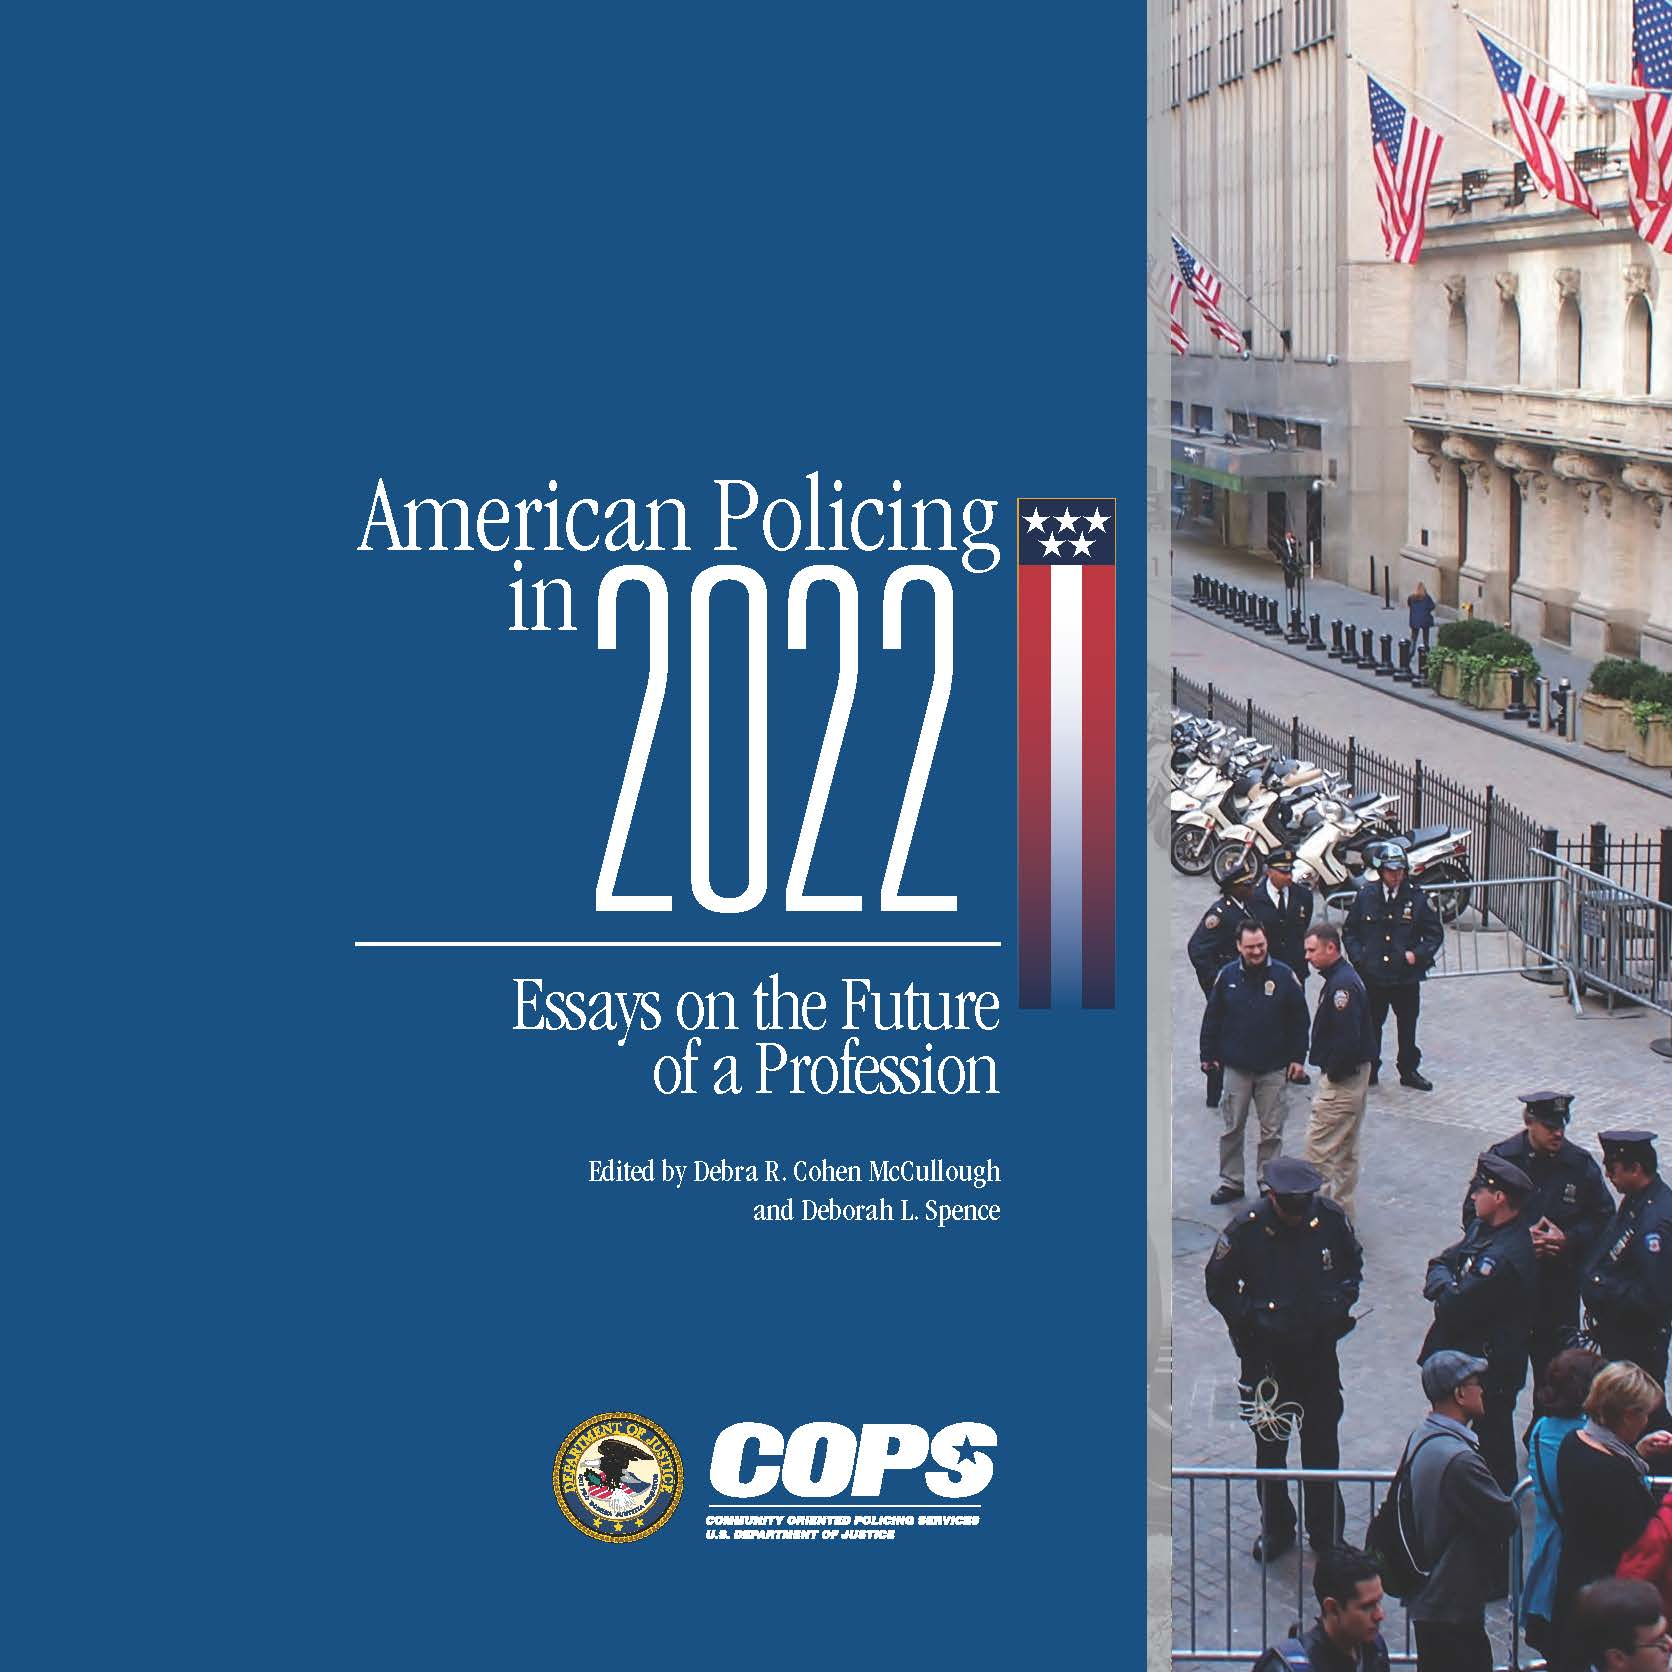 American Policing in 2022: Essays on the Future of the Profession